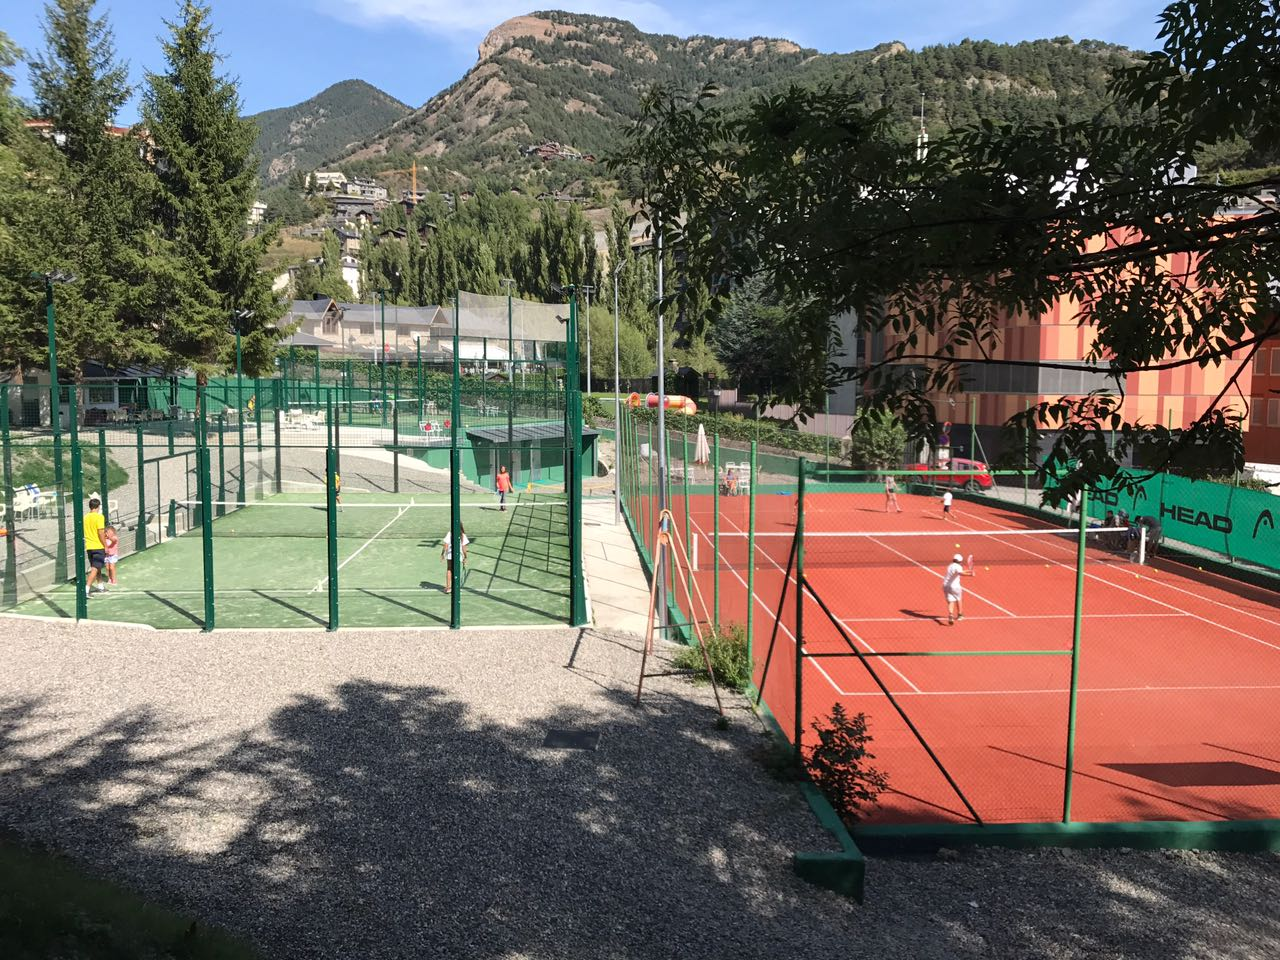 Club de tennis I padel la massana